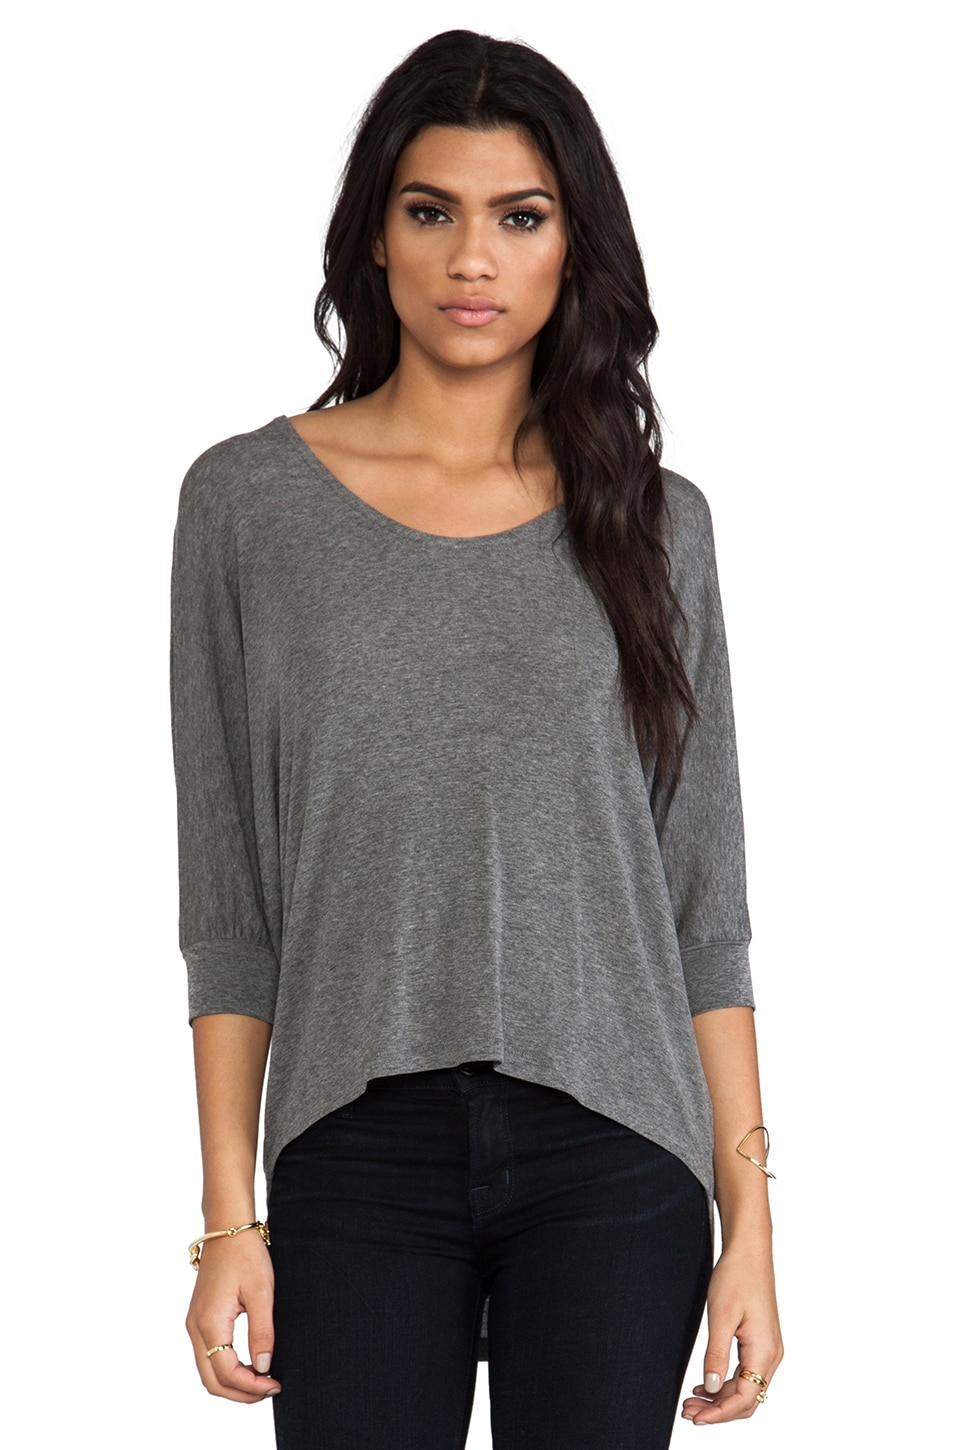 Splendid Drapey Lux Top in Steel